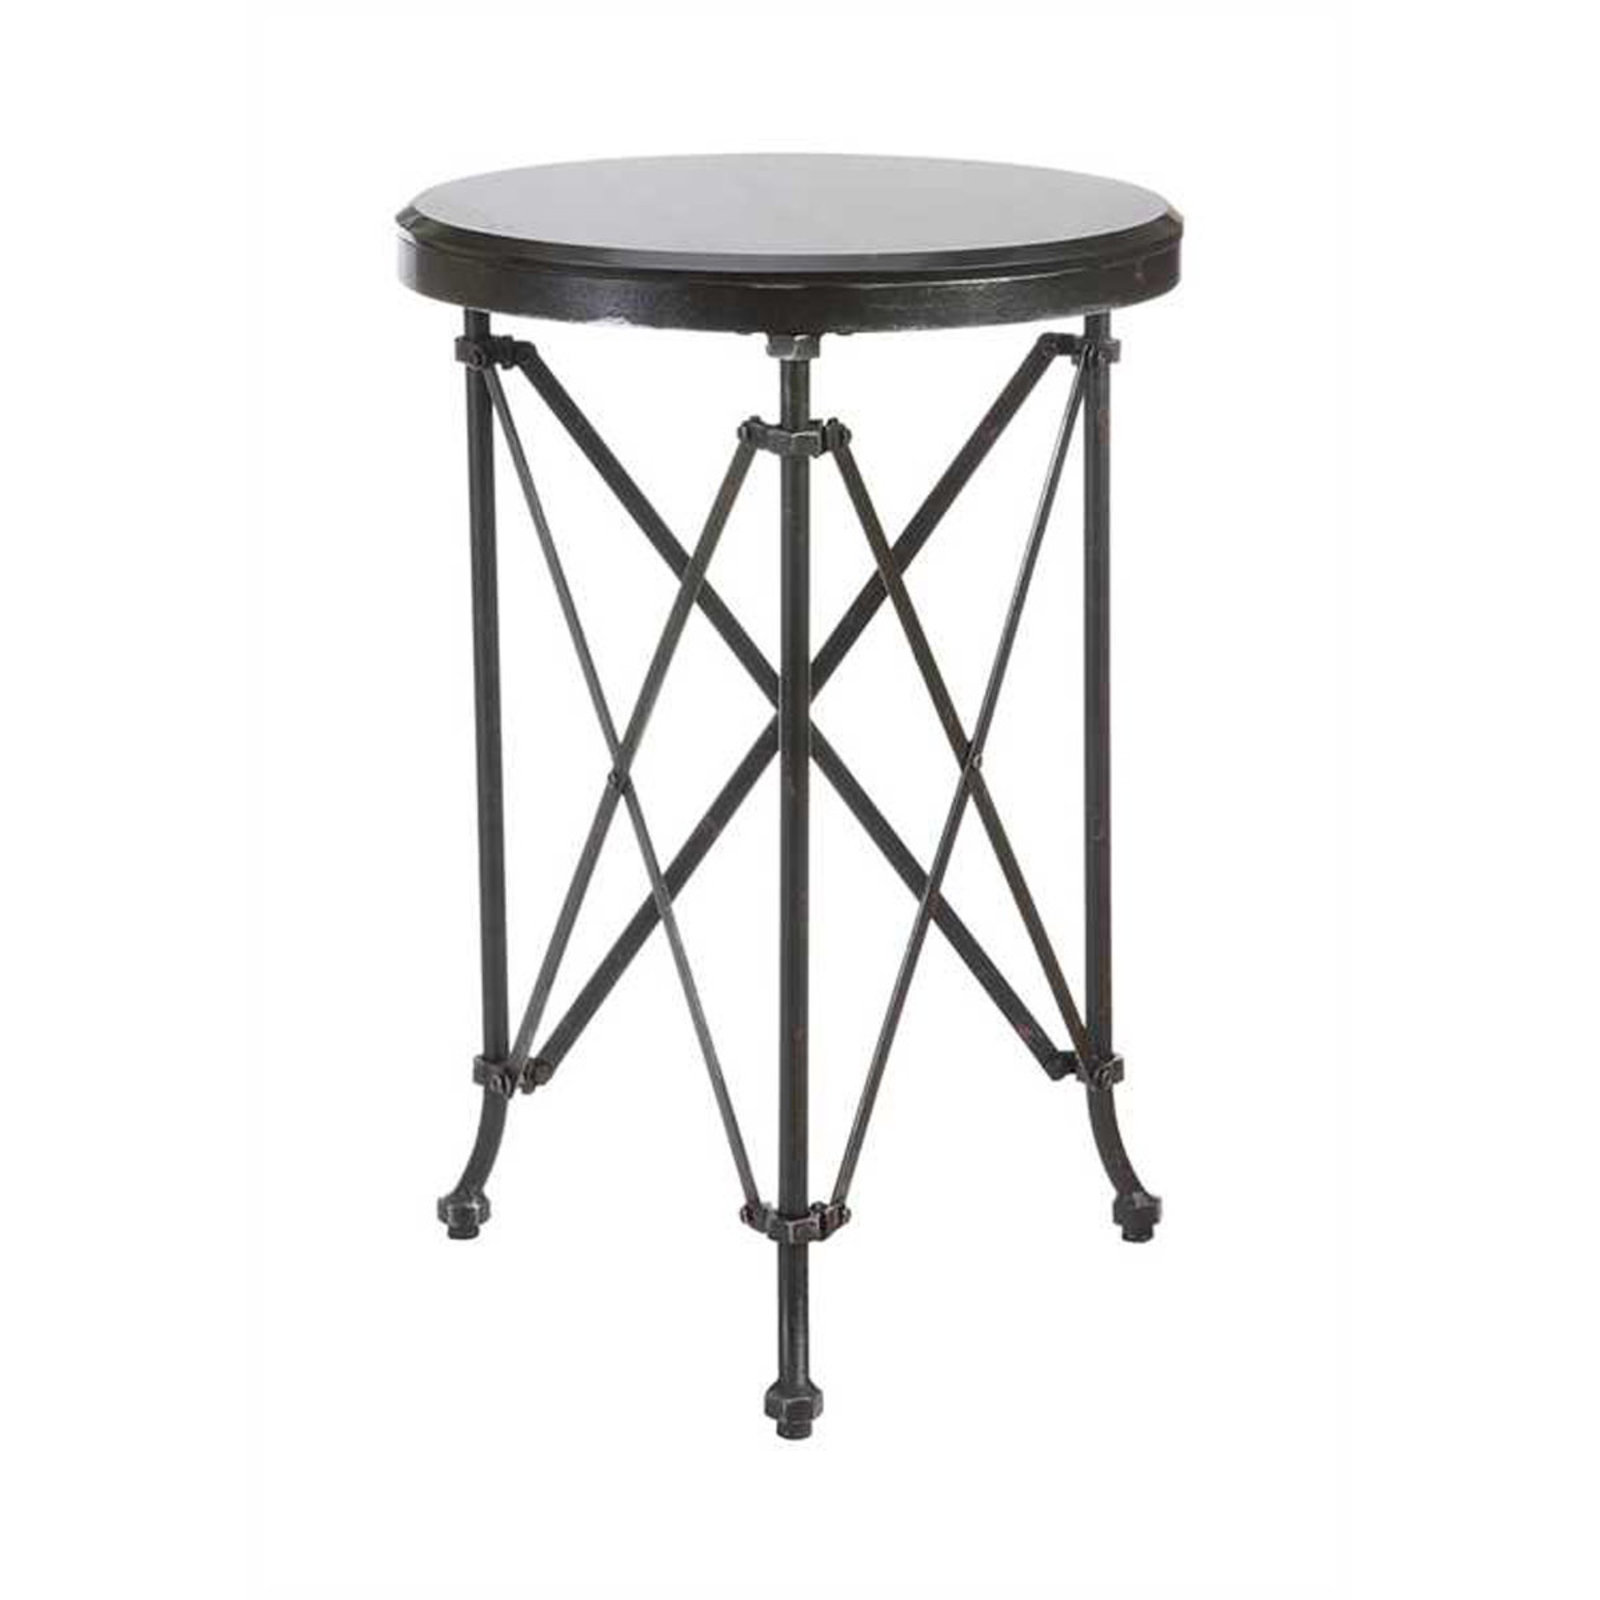 coffee tables side shades light industrial accordion leg table metal folding accent dale tiffany hand painted lamps target entry glass pedestal and wooden bedside baroque small